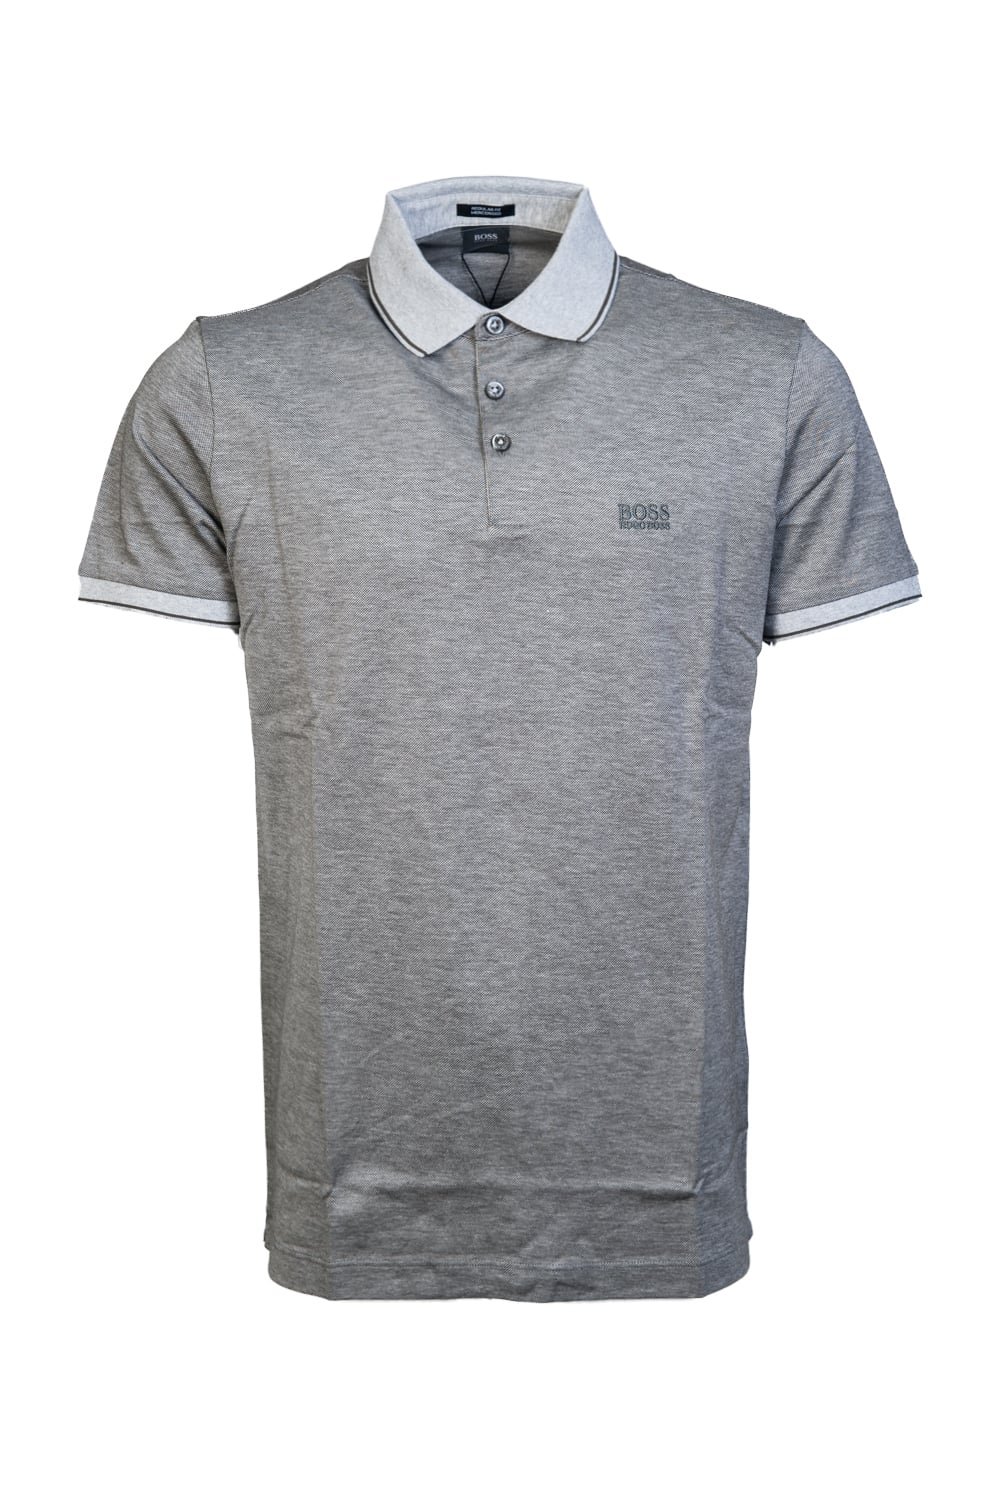 Hugo boss polo t shirt clothing from sage clothing uk for Boss t shirt sale